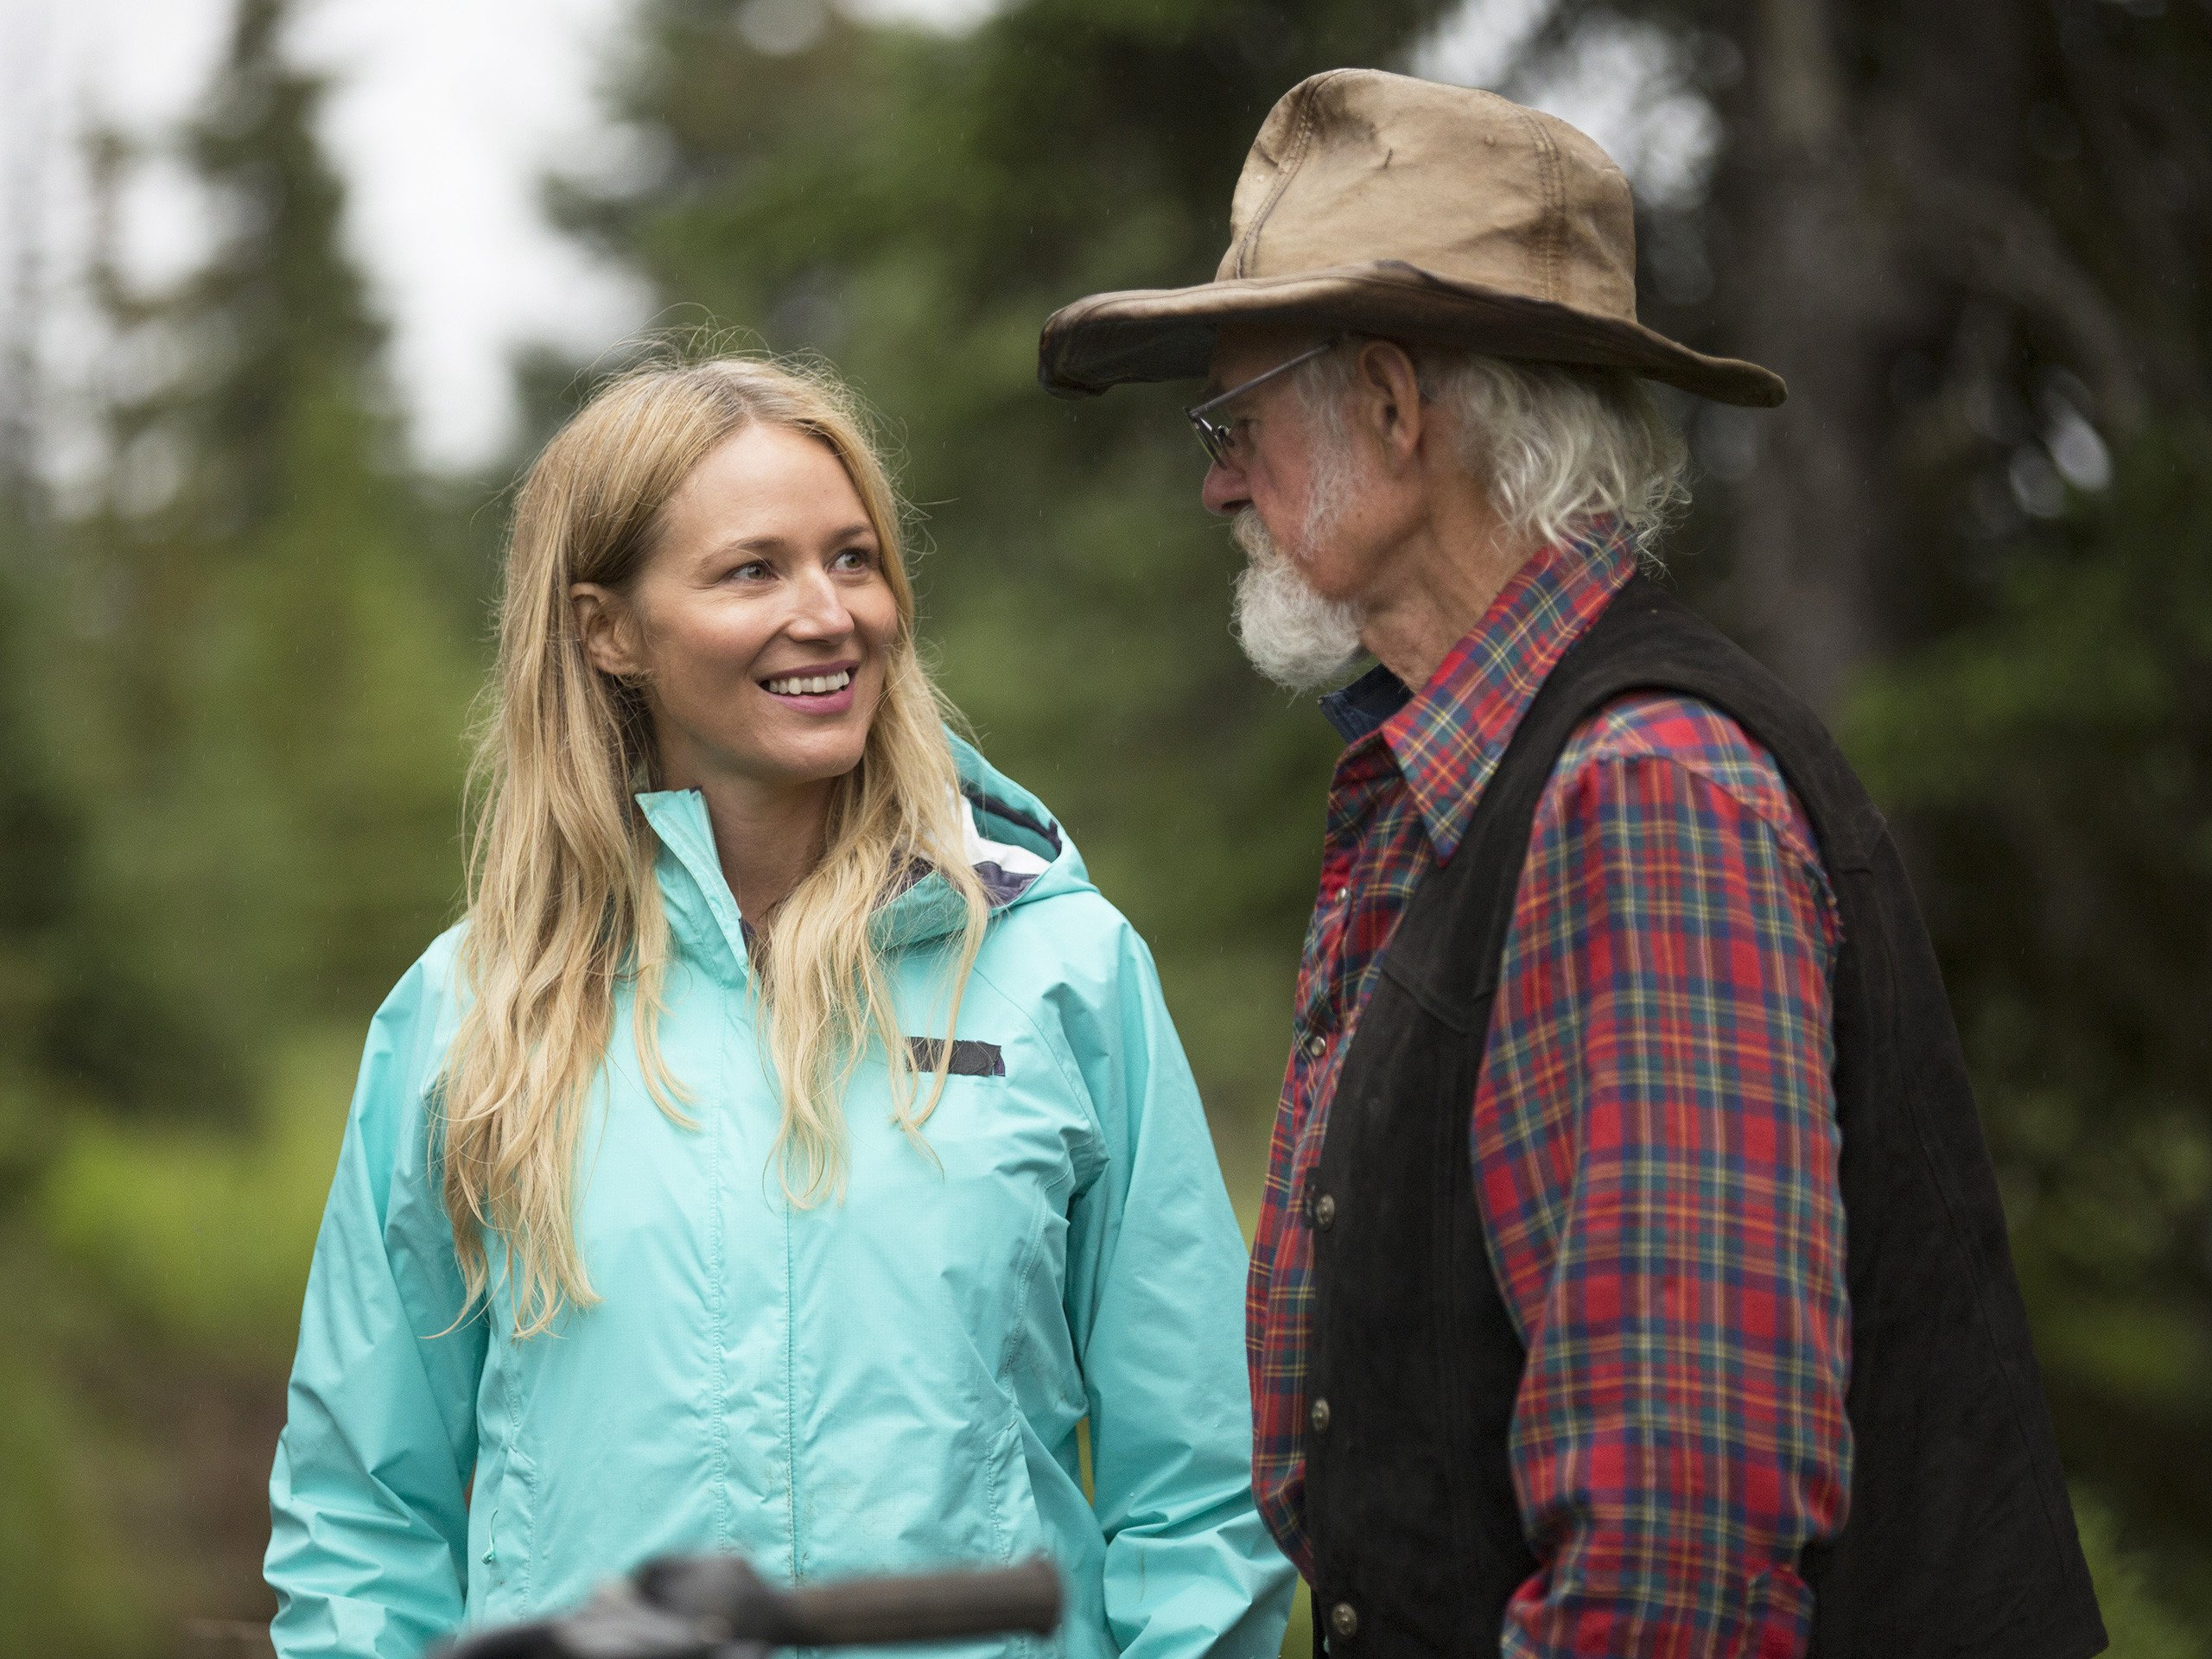 Watch Alaska: The Last Frontier S7E3 - The Day the